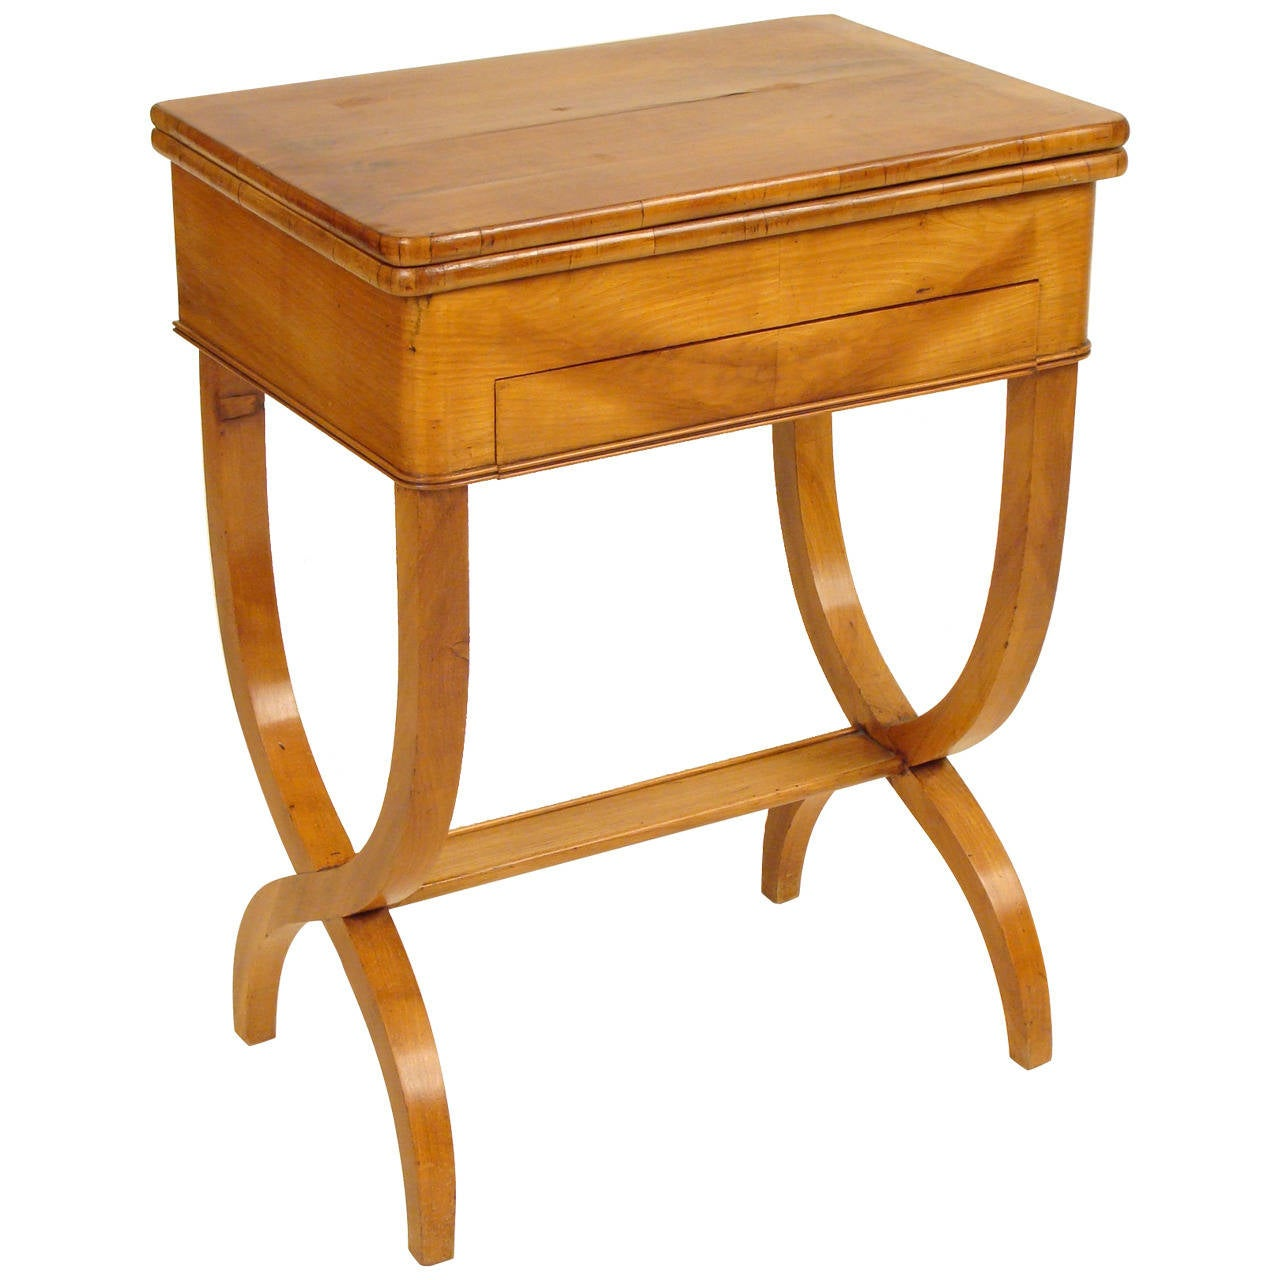 Louis philippe style games table at 1stdibs for Table louis philippe